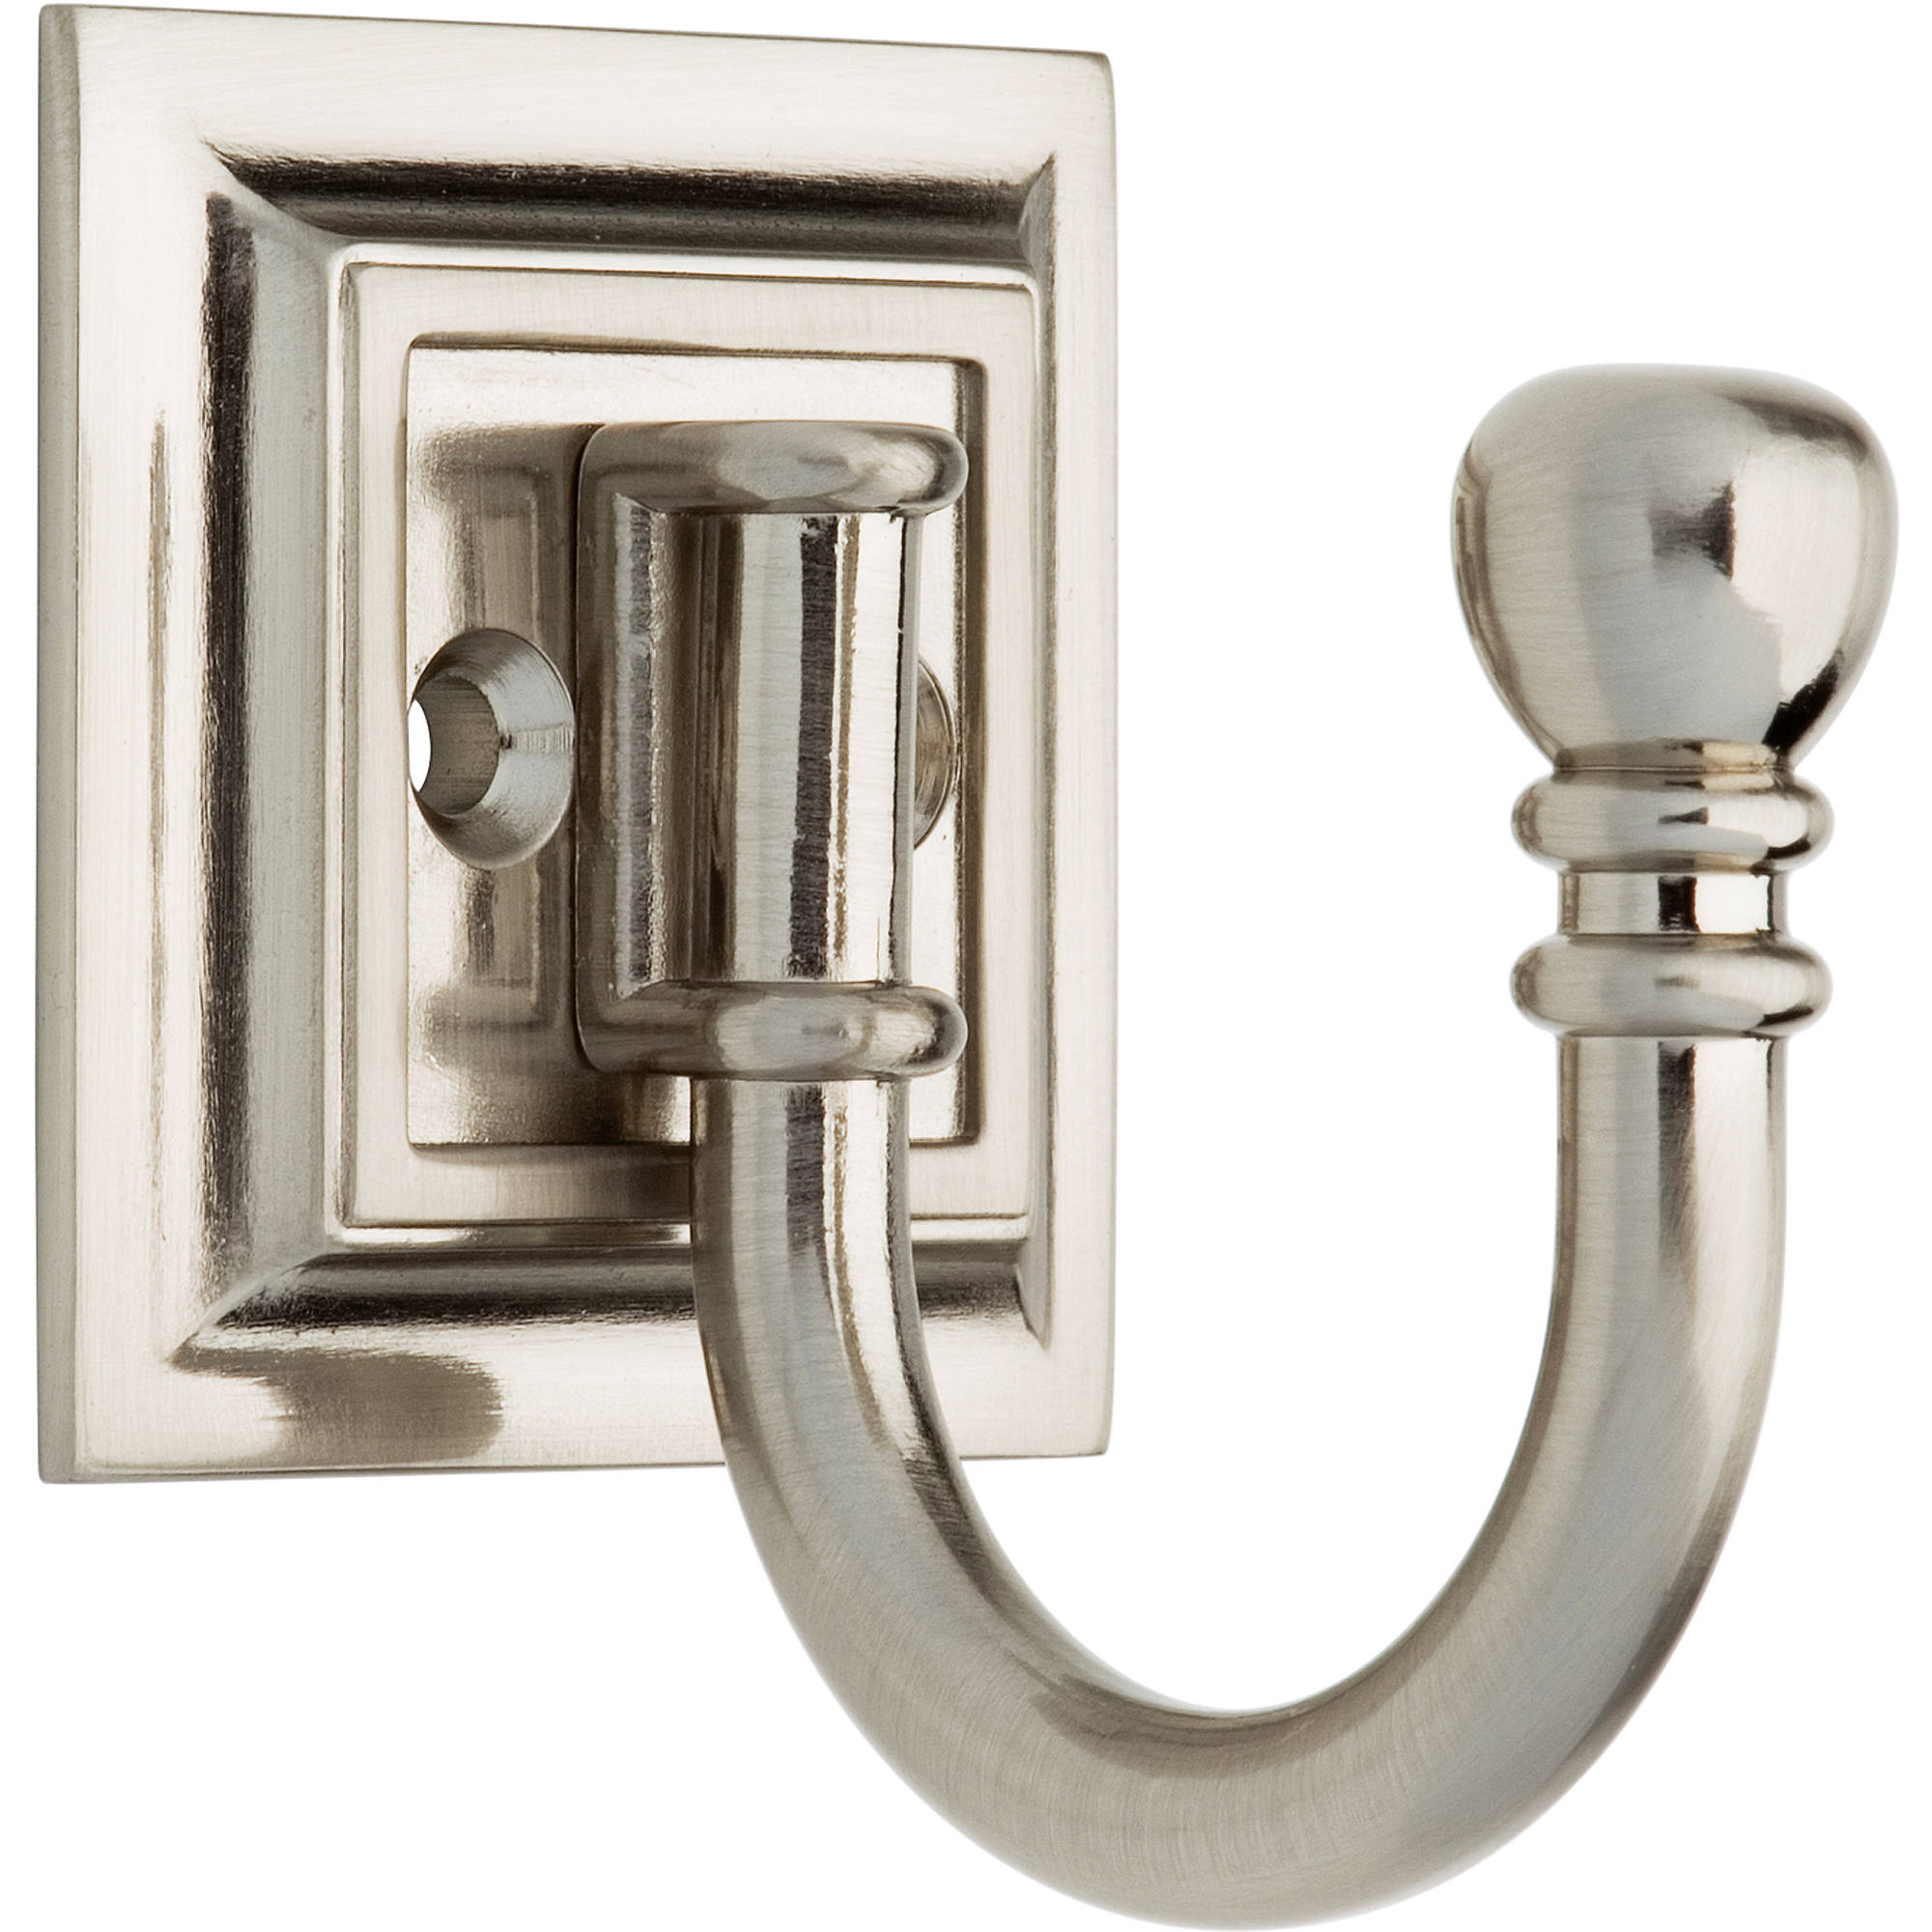 Brainerd Architectural Single Prong Hook, Available in Multiple Colors